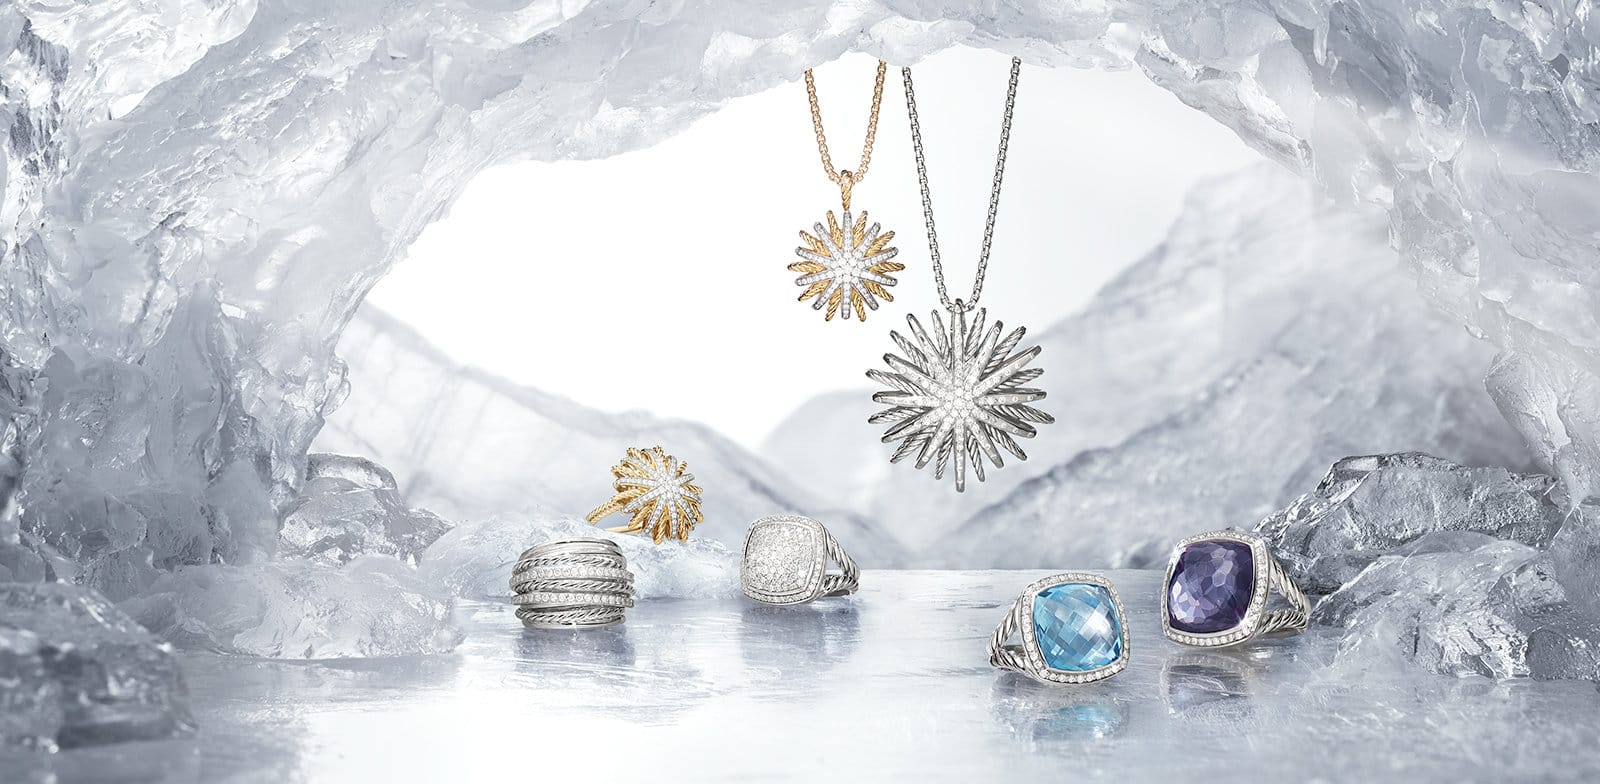 An animated image of snow falling in front of The Cable Collection®, Barrels, Continuance®, Pure Form® and Stax bracelets in 18K yellow gold with or without diamonds in a row within a bright ice cave.